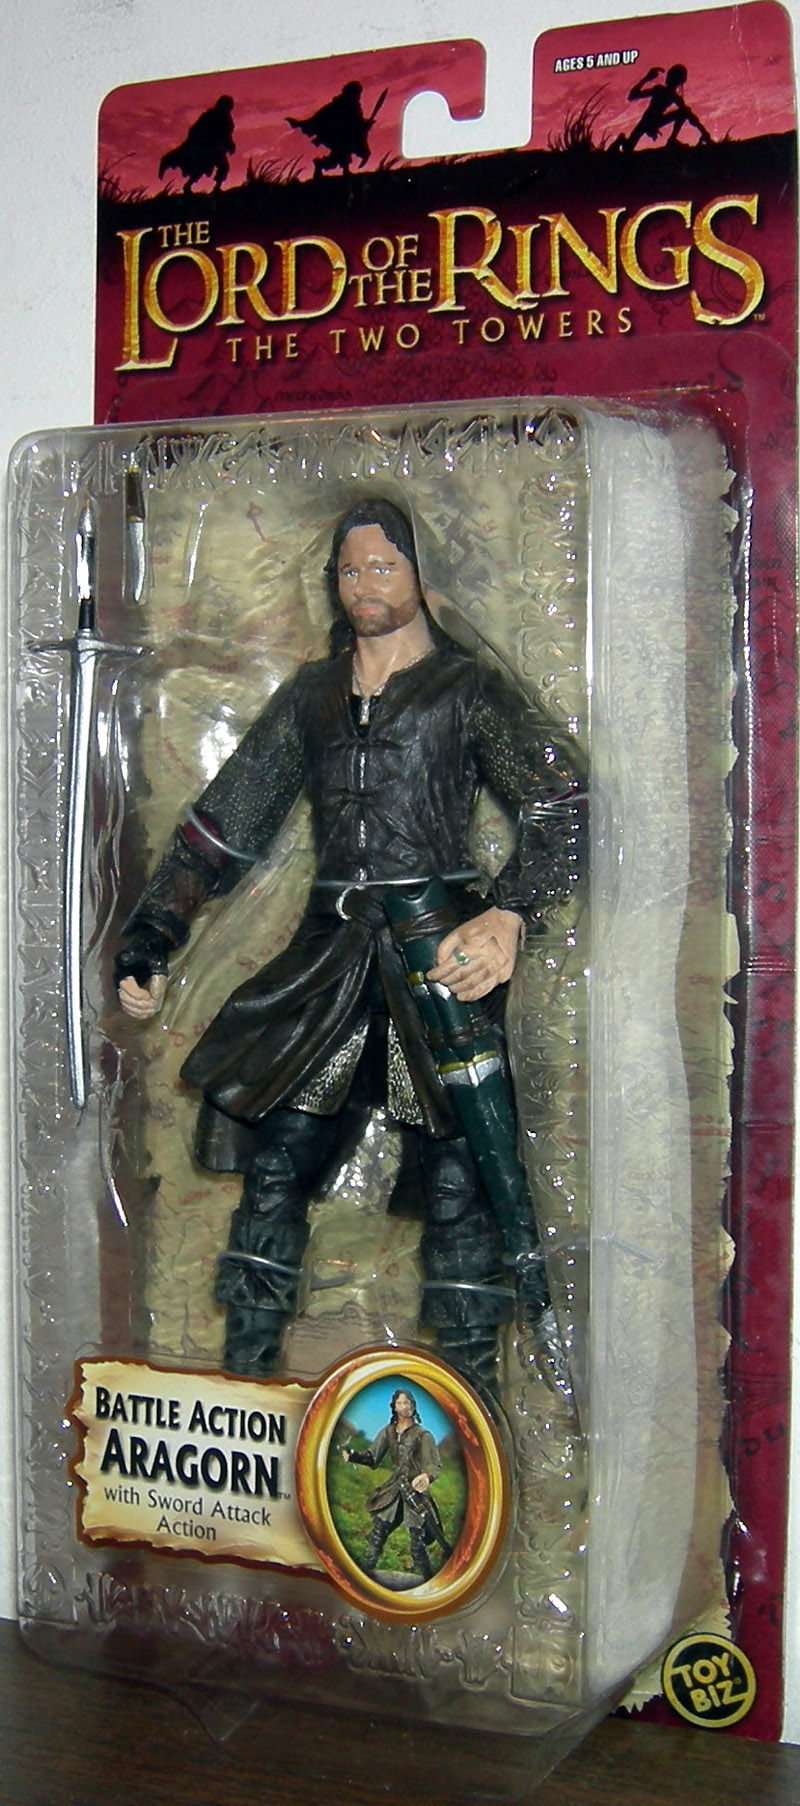 battleactionaragorn(trilogy).jpg